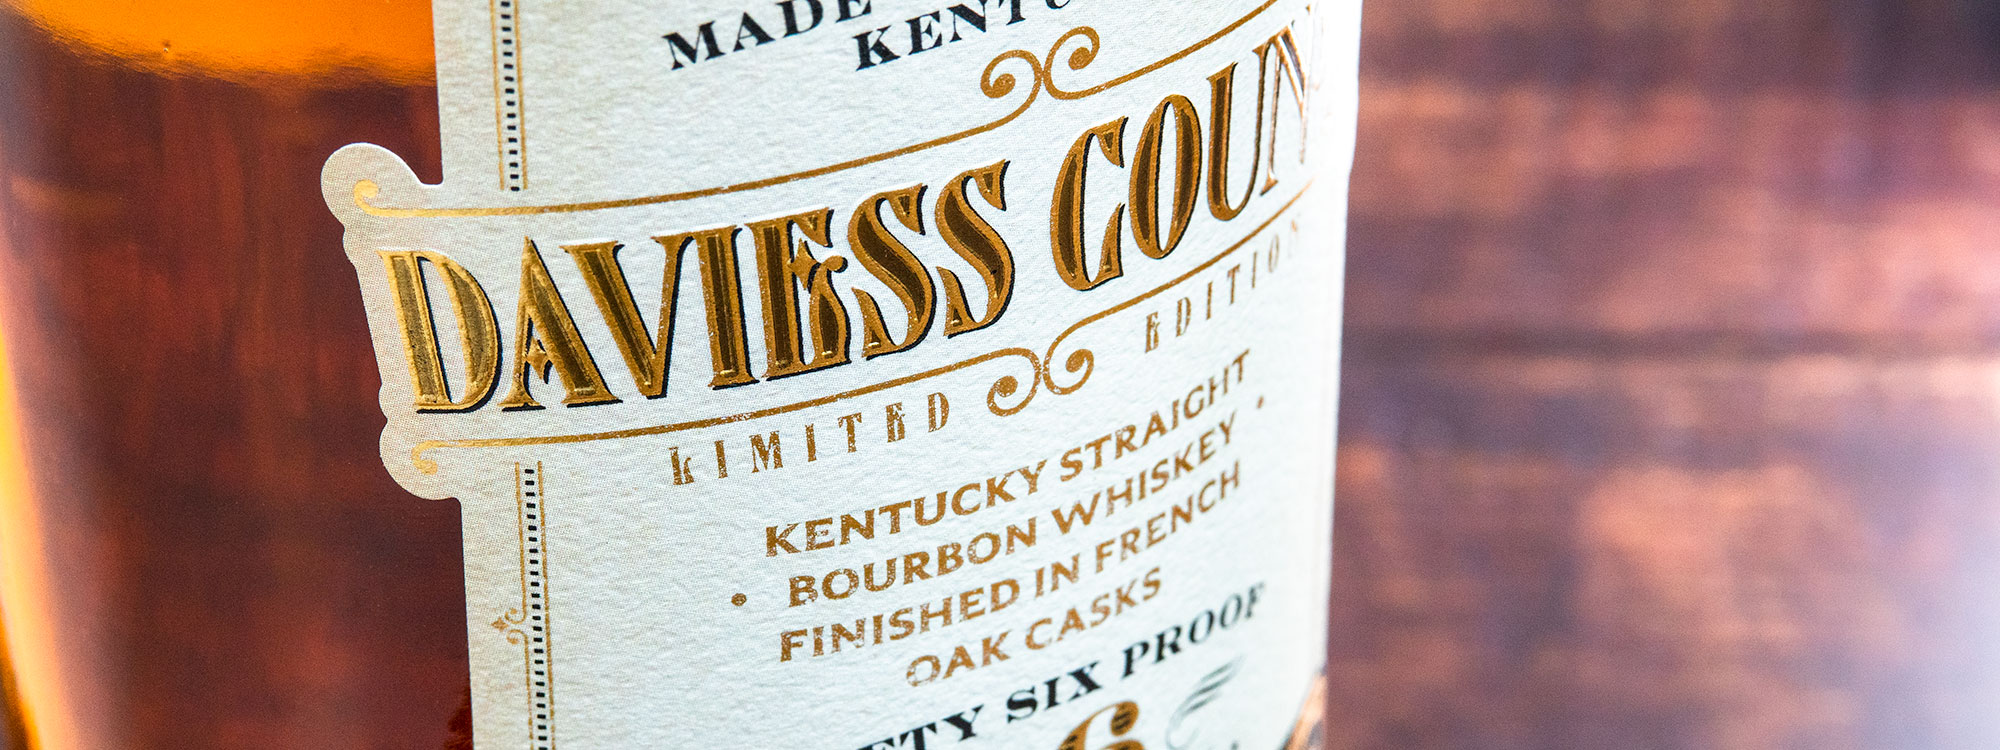 Daviess County Straight Bourbon Whiskey Finished in French Oak Barrels Banner